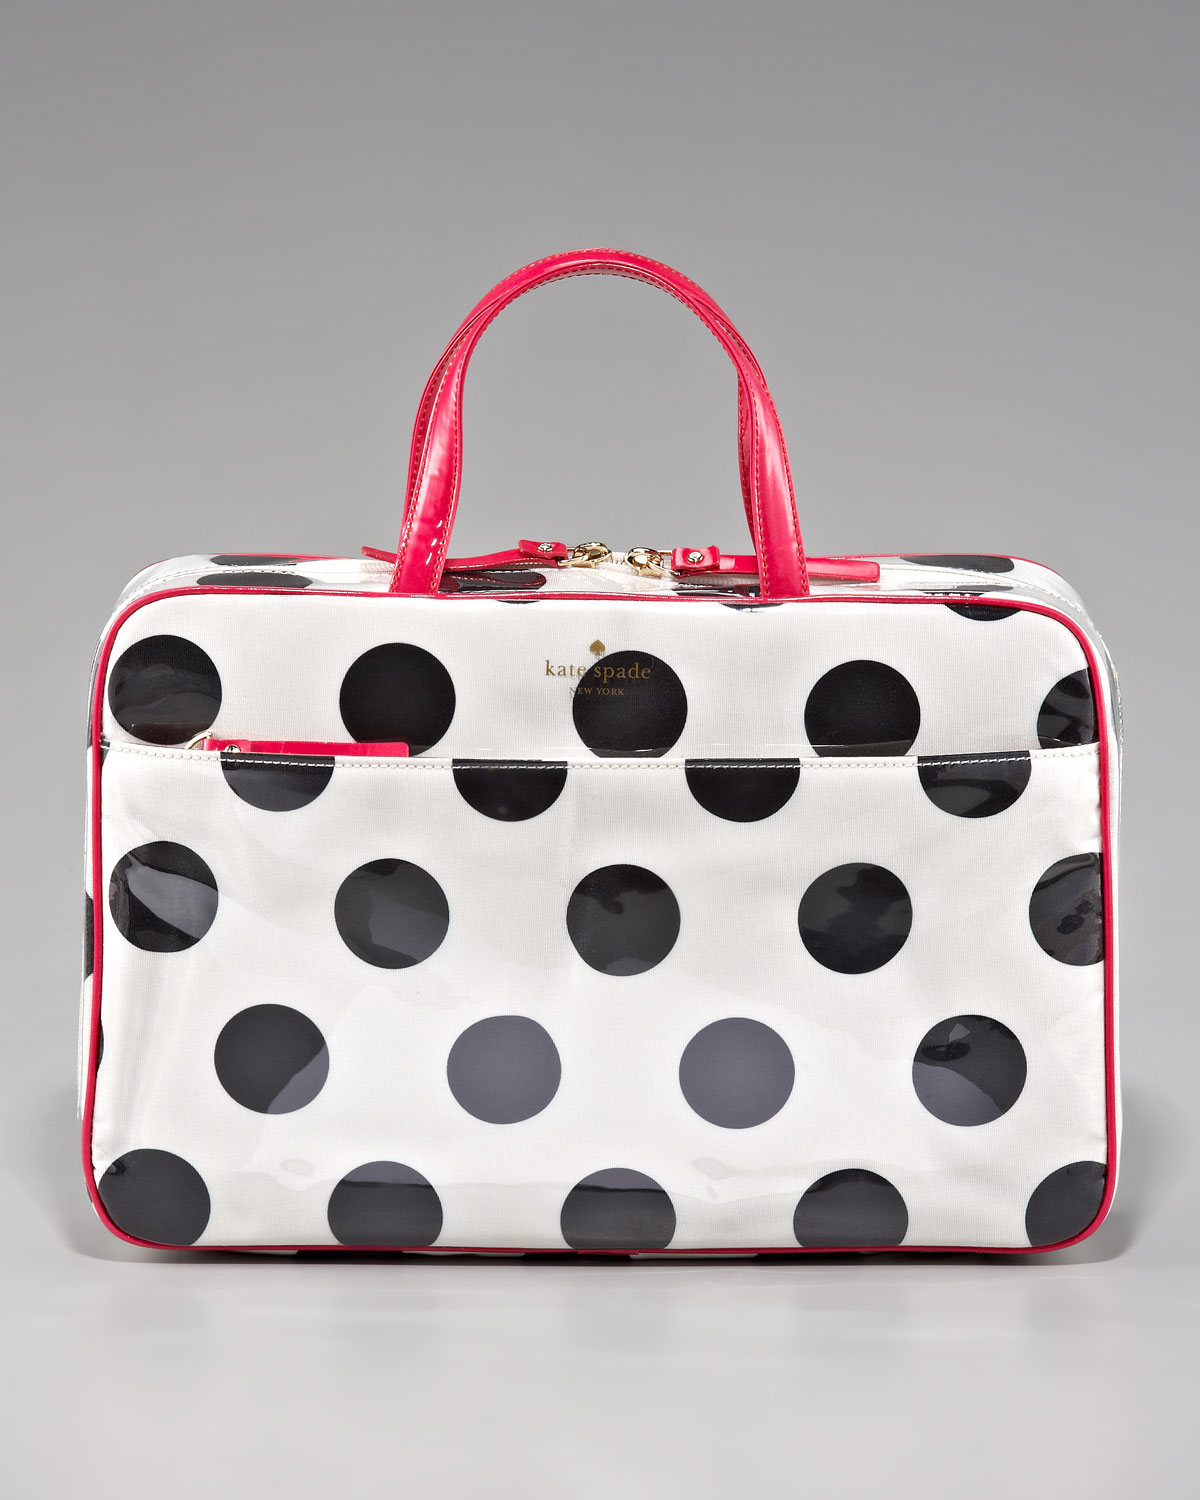 bfae8428e130 Lyst - Kate Spade Polkadot Manuela Cosmetic Case in Black